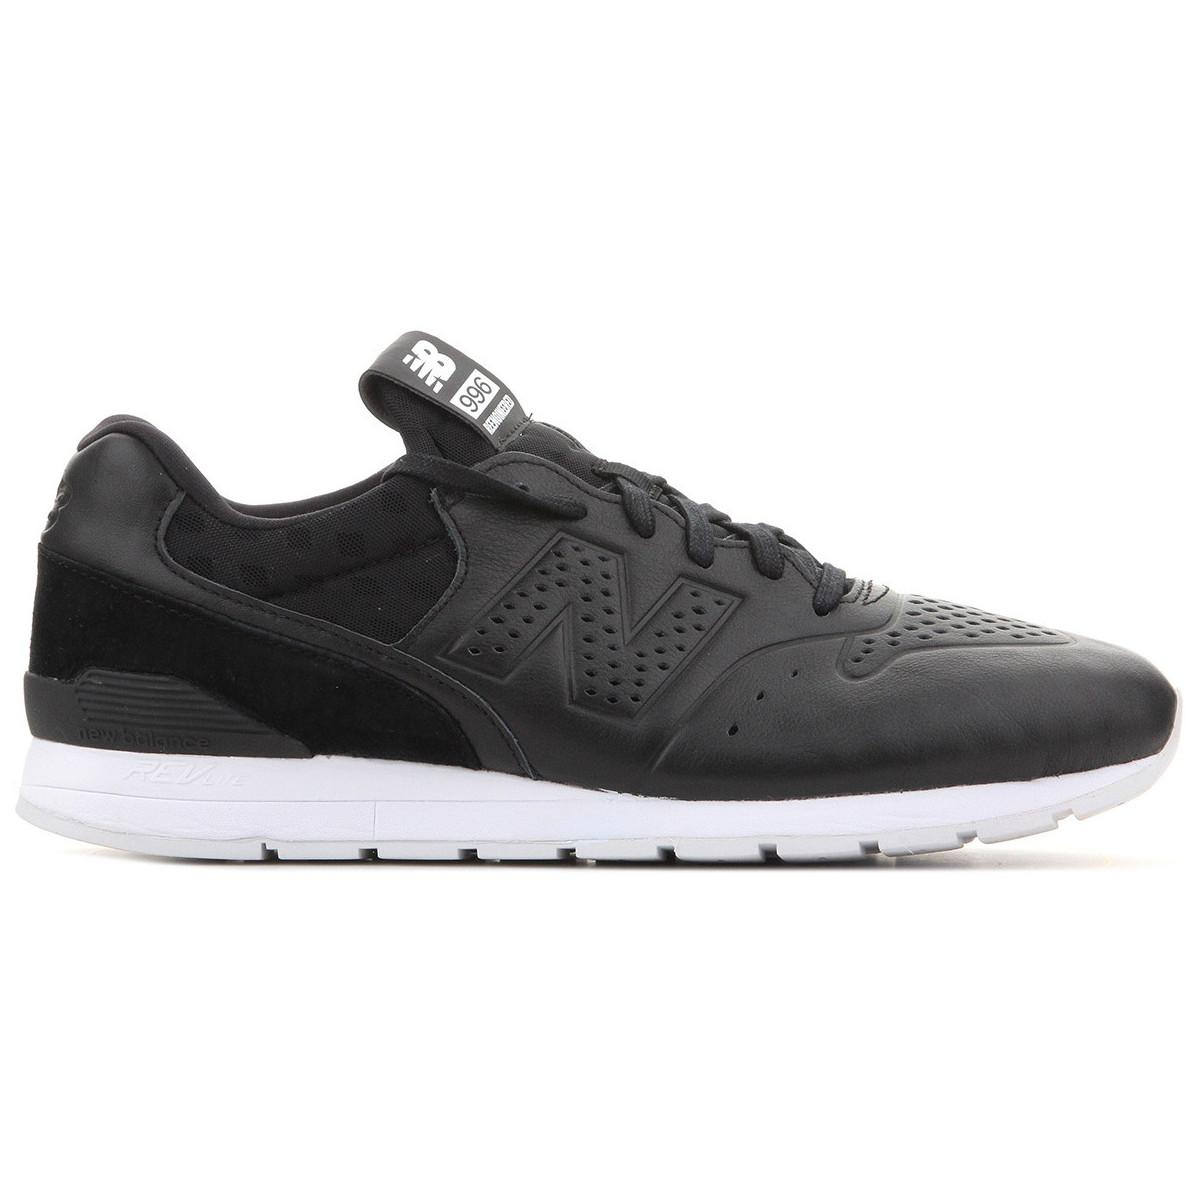 great prices low price sale cheap sale Mrl996d8 Men's Shoes (trainers) In Black